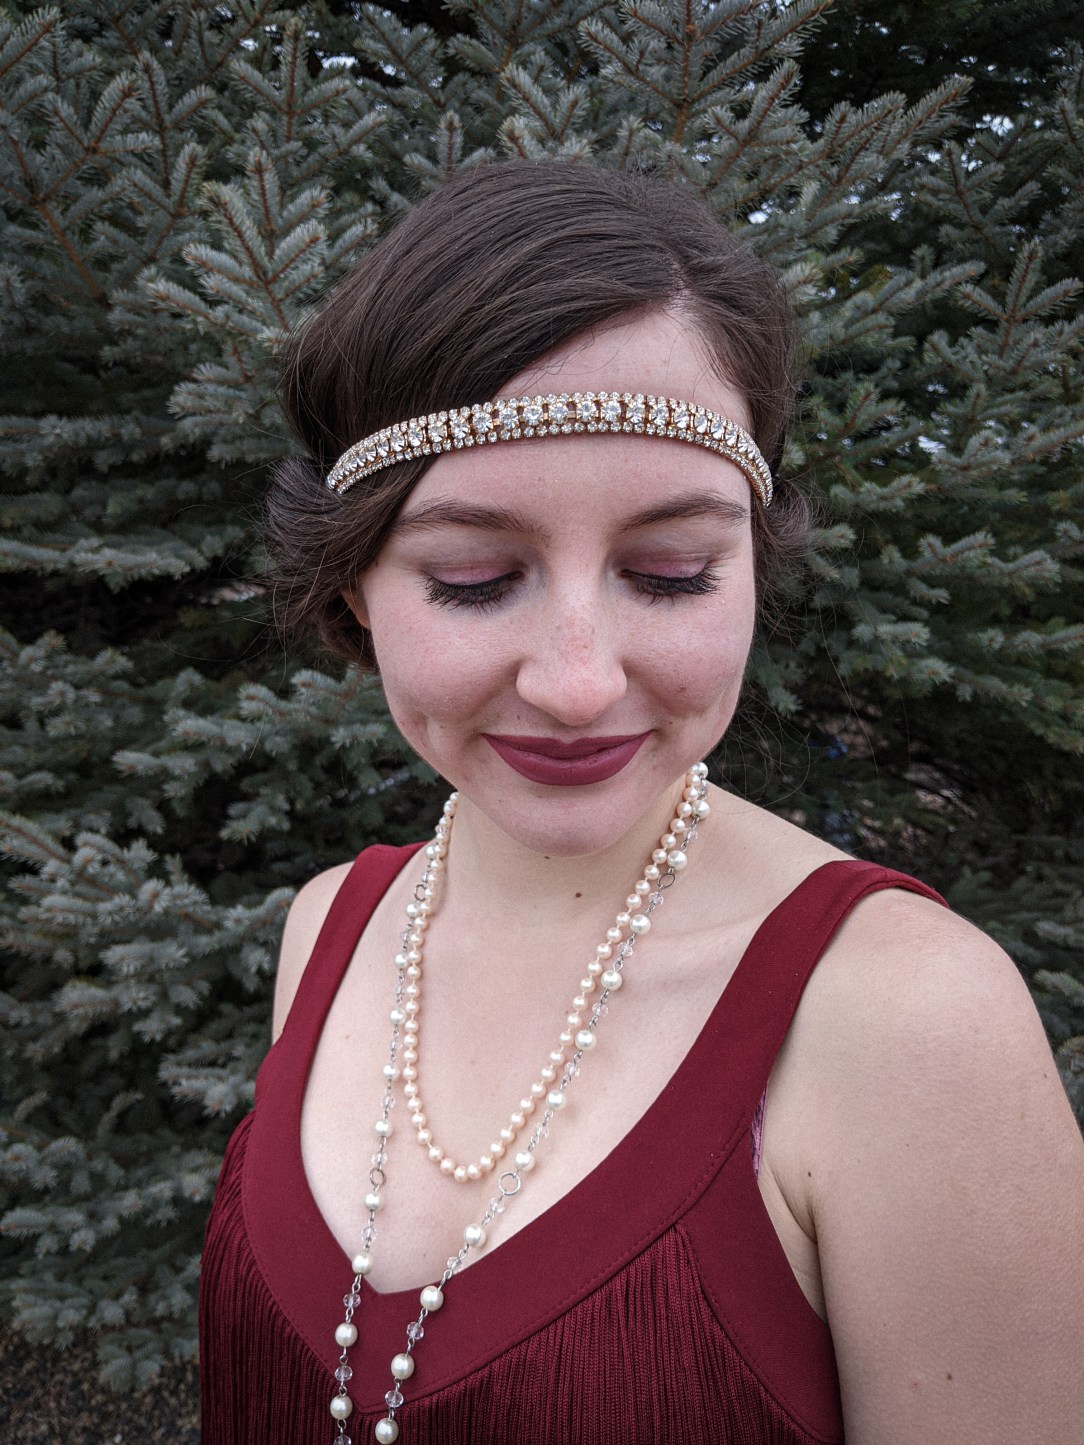 flapper girl makeup, flapper girl accessories